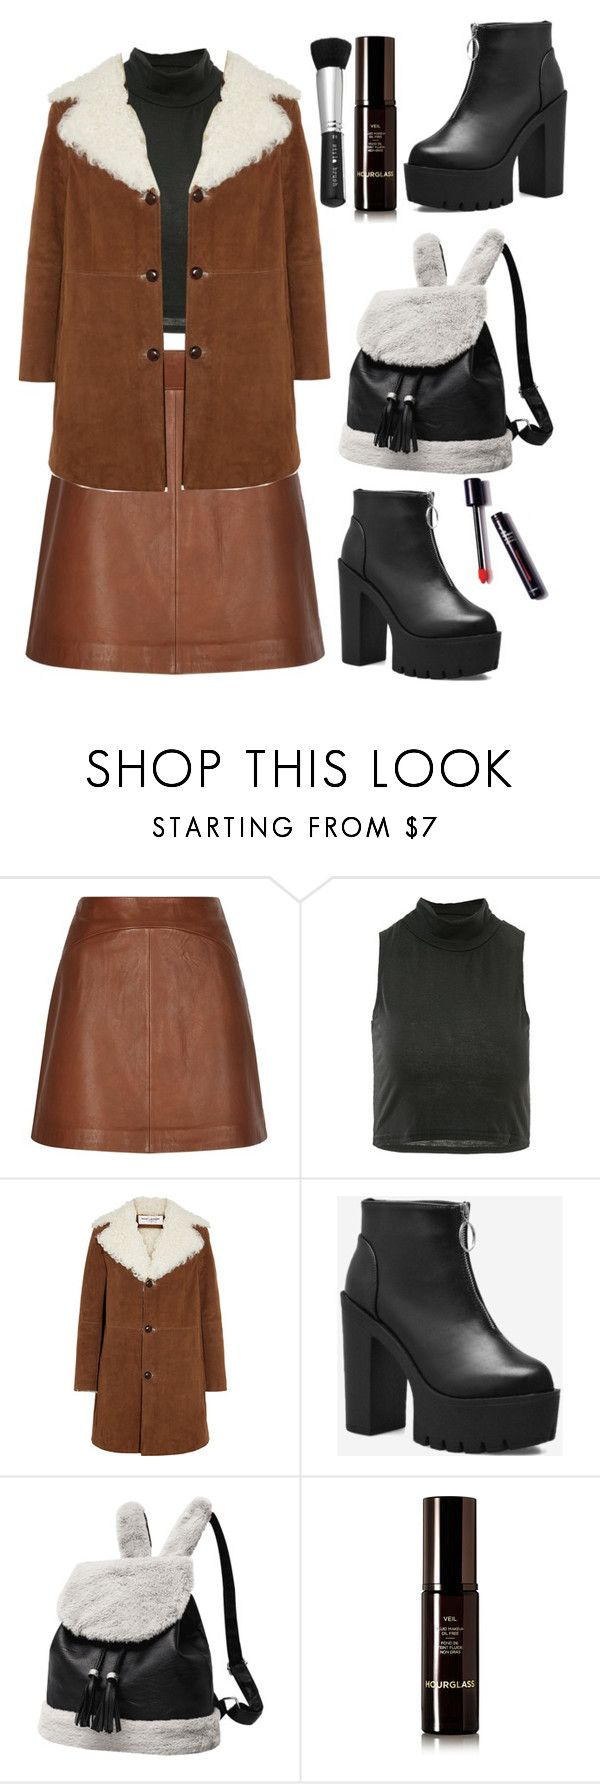 """""""Brown And Black Winter ❄️ Outfit #666"""" by earthelglowing ❤ liked on Polyvore featuring Reiss, Yves Saint Laurent, Hourglass Cosmetics, Stila and GetTheLook"""